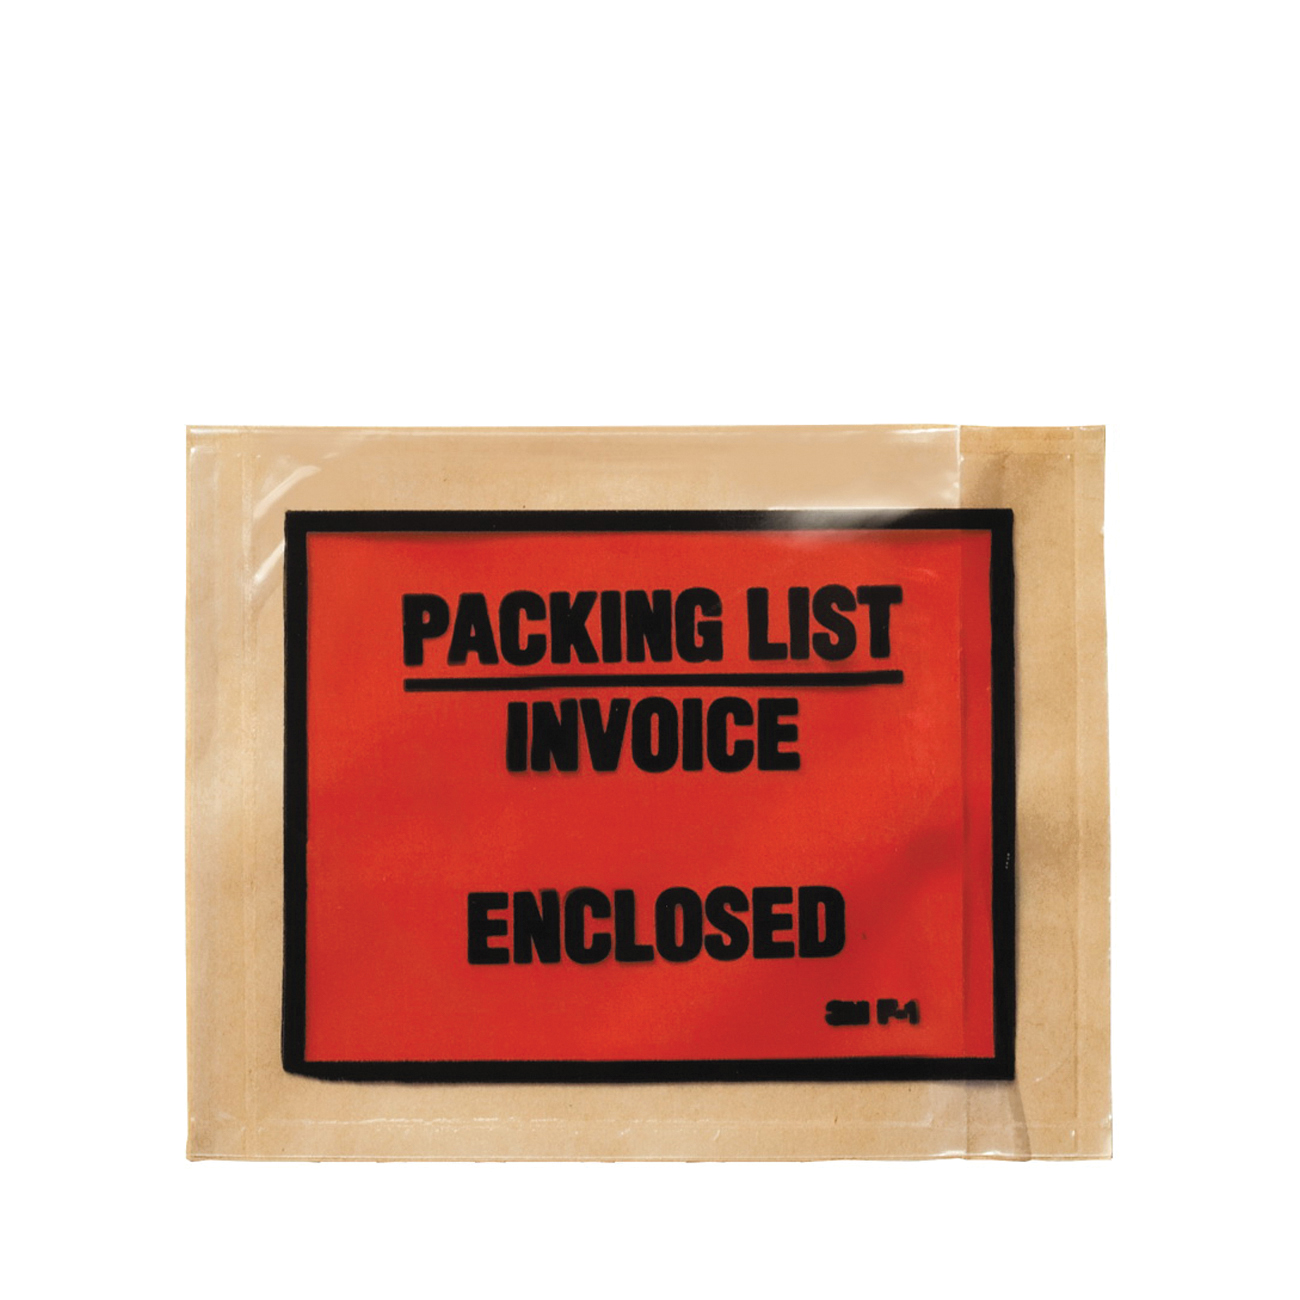 3M™ 021200-73711 Full Face Printed Packing List Envelope, 5-1/2 in L x 4-1/2 in W, Polyethylene Film Backing, Clear